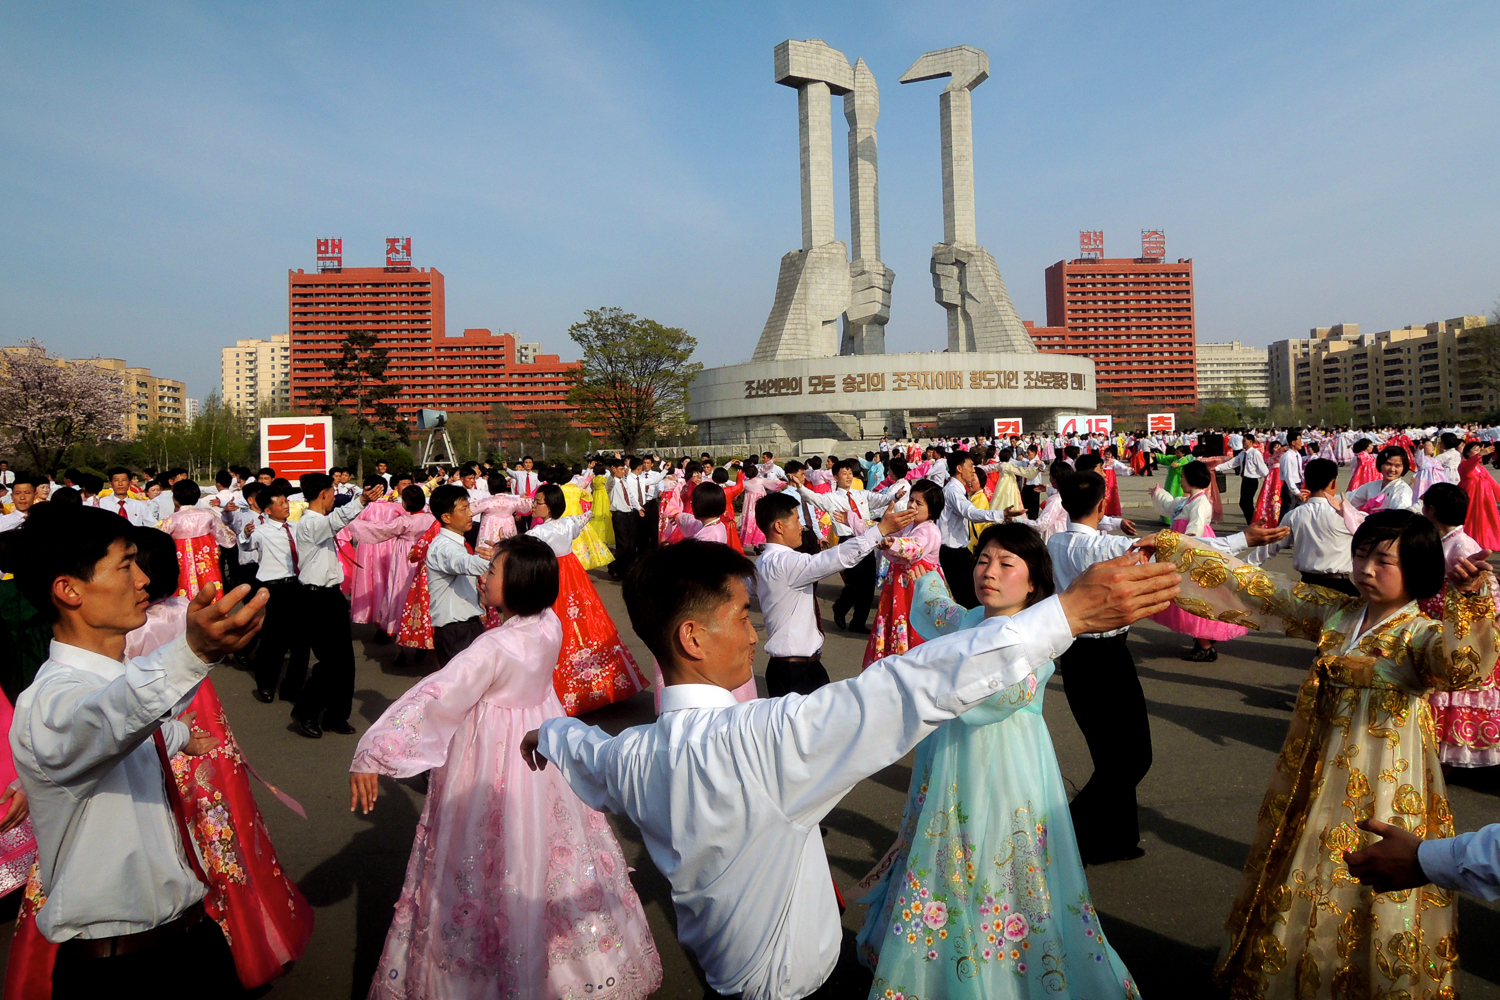 Today is a holiday in the DPRK - Labor Day 36